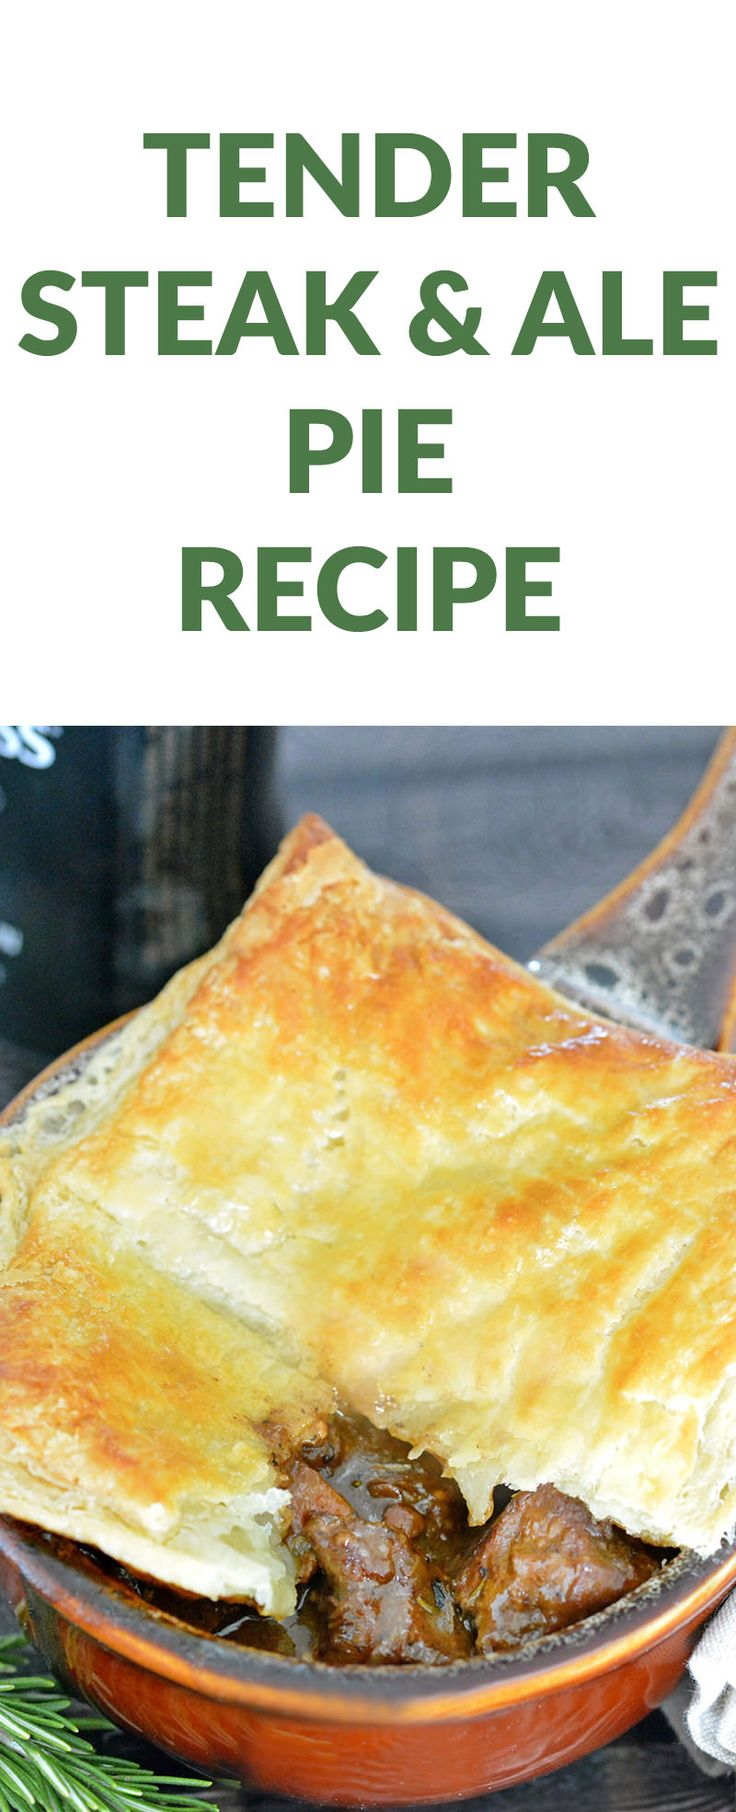 Hearty Steak and Ale Meat Pie Recipe loaded with tender steak, robust gravy, light pastry and Guinness! This is a PERFECT St. Patrick's Day Recipe. This dinner recipe will impress your family and friends. Use your favorite stout or ale beer. This steak recipe will be your favorite recipe for years to come.